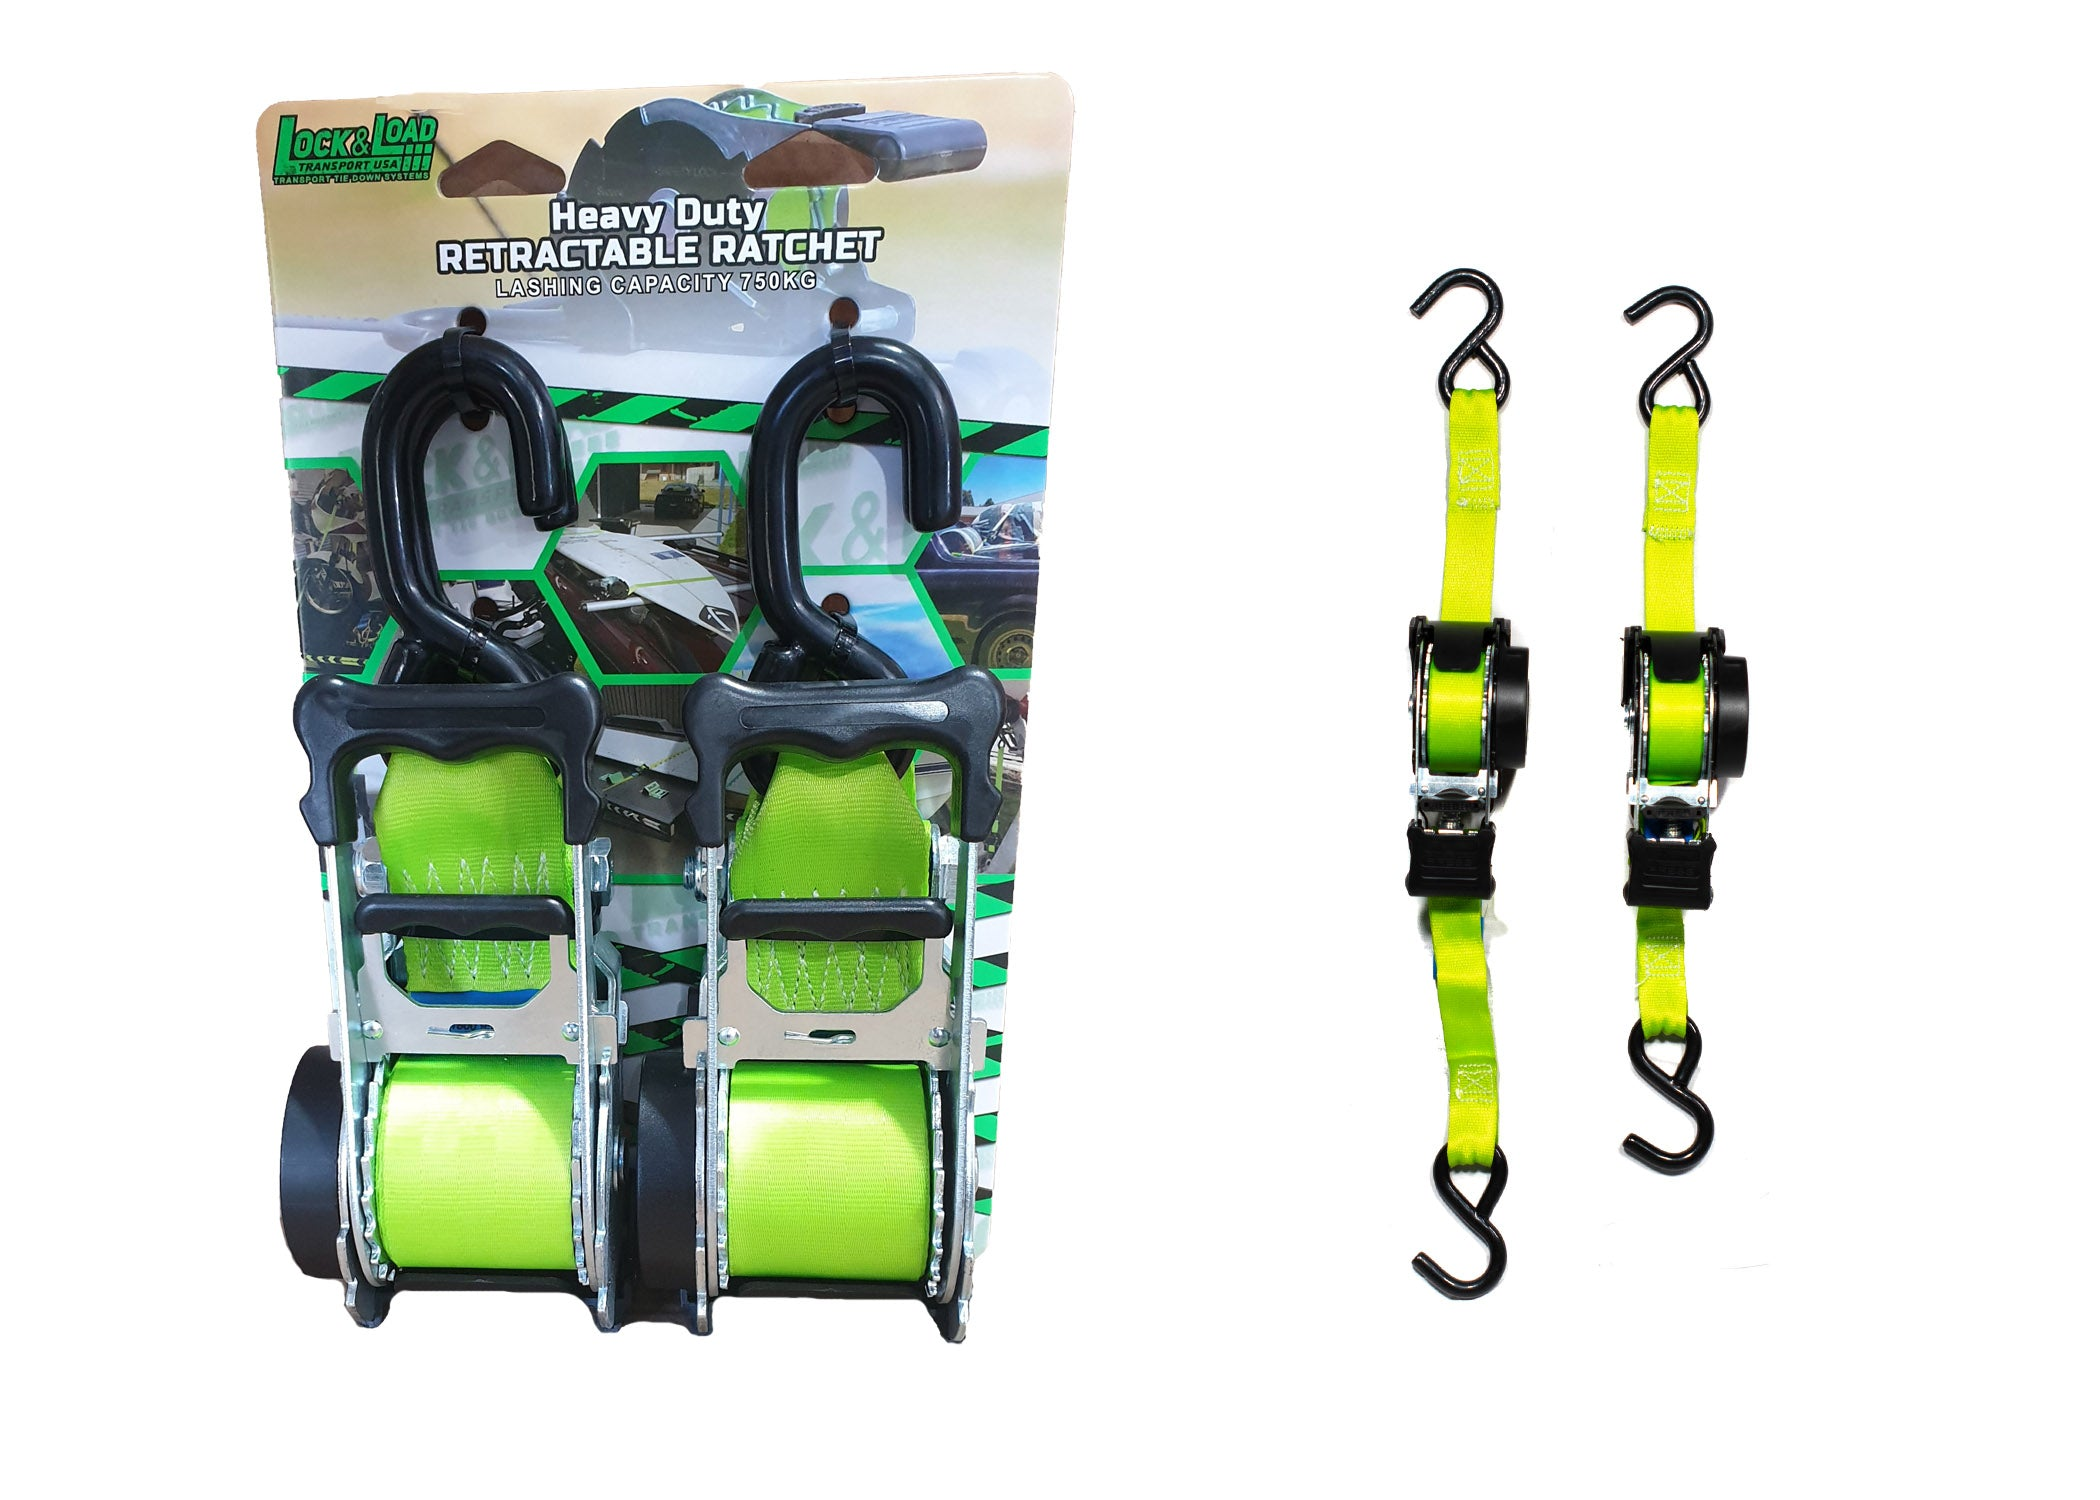 Retractable Ratchet Straps 50mm- RW16- (HEAVY DUTY)